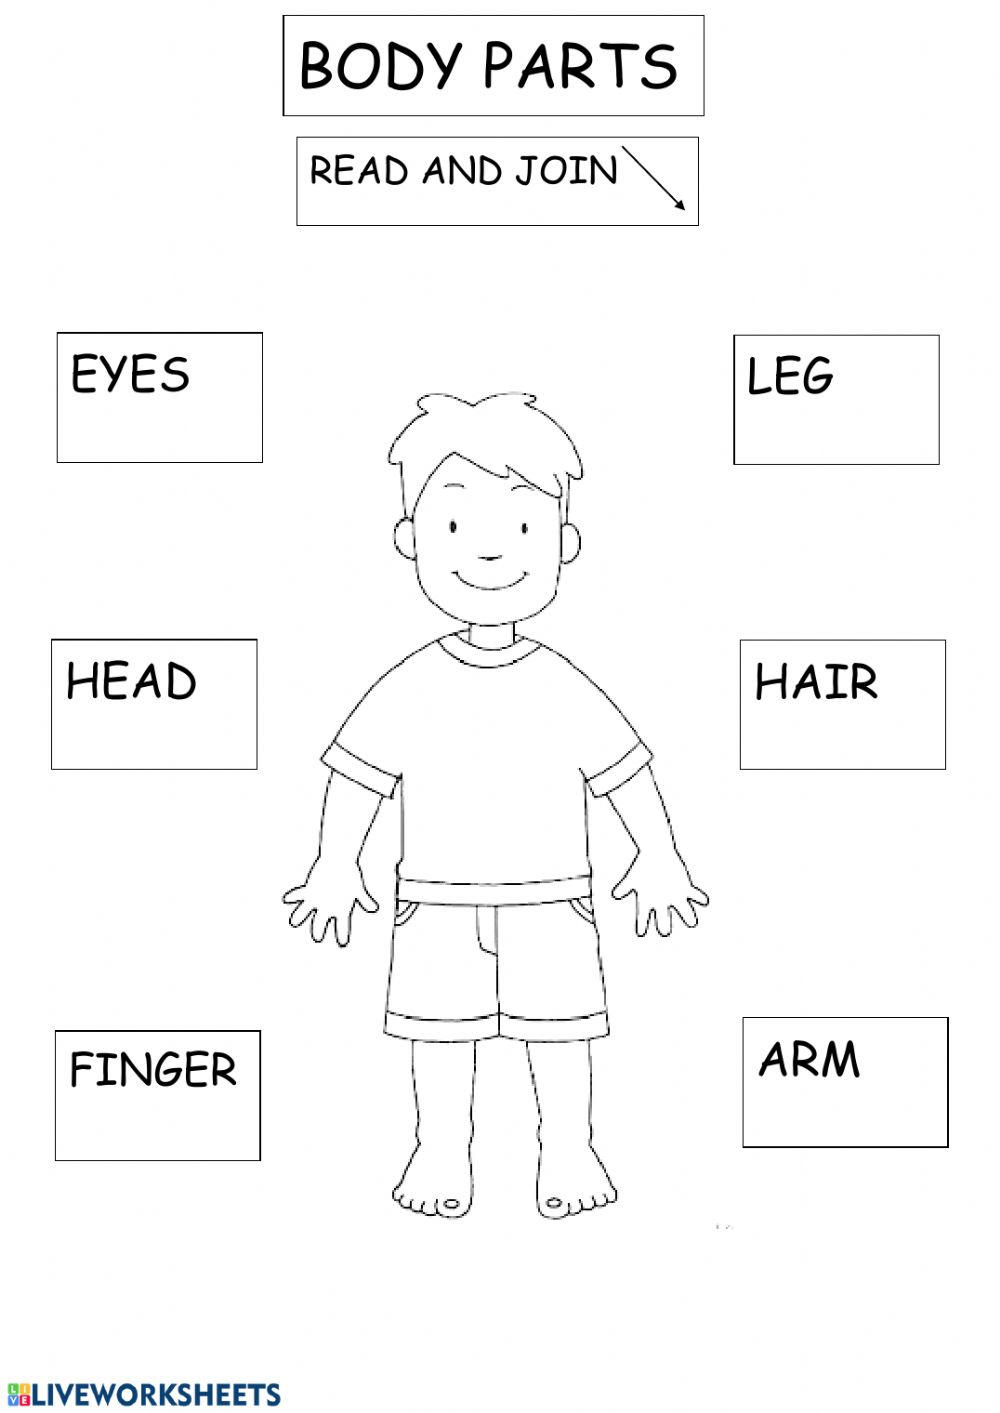 medium resolution of Body parts exercise for 2ND GRADE